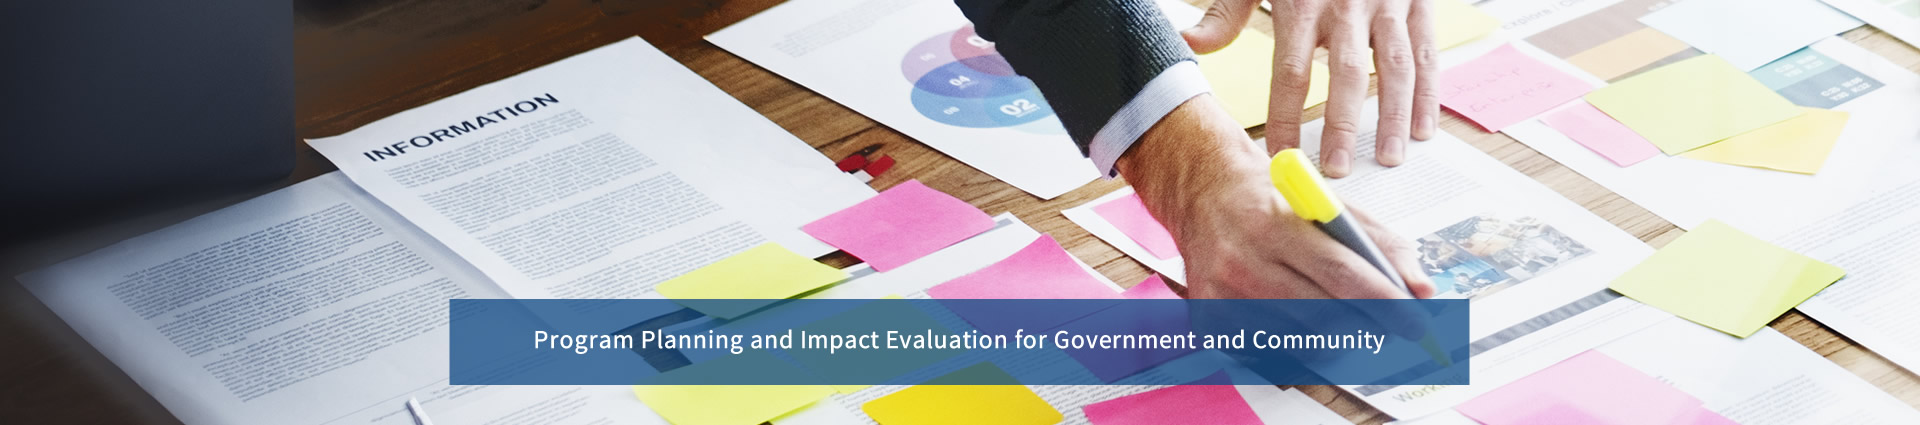 program planning and impact evaluation for government and community